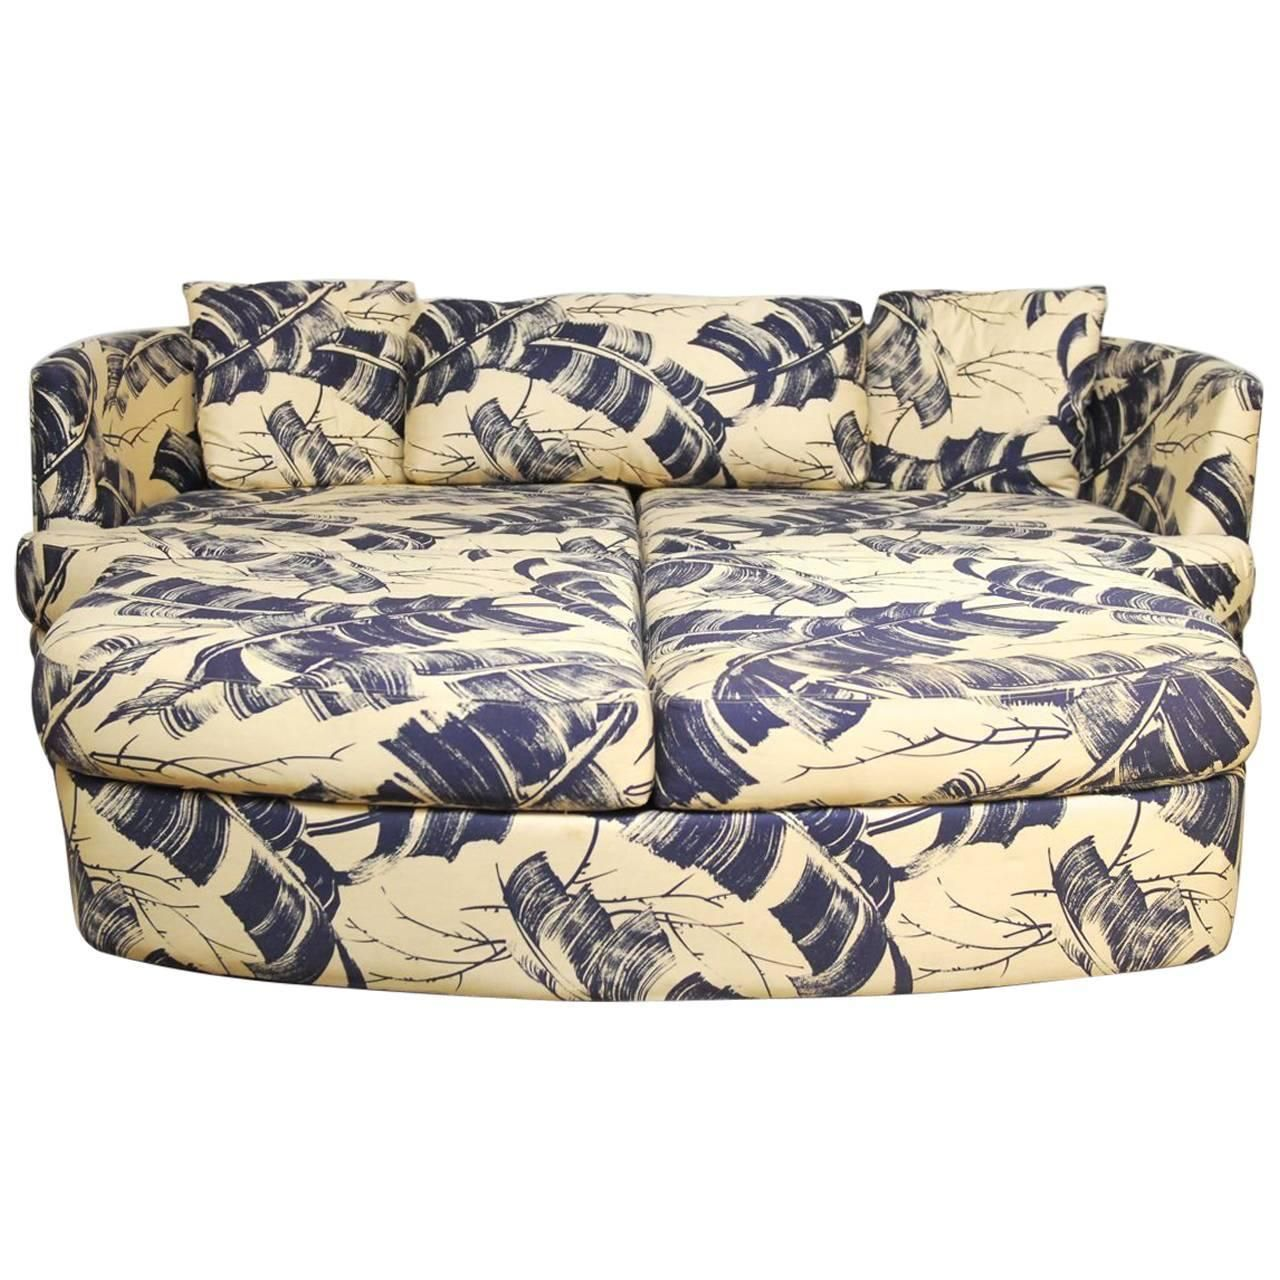 Selig Mid-Century Kidney Sofa and Ottoman | From a unique collection of antique and modern sofas at https://www.1stdibs.com/furniture/seating/sofas/